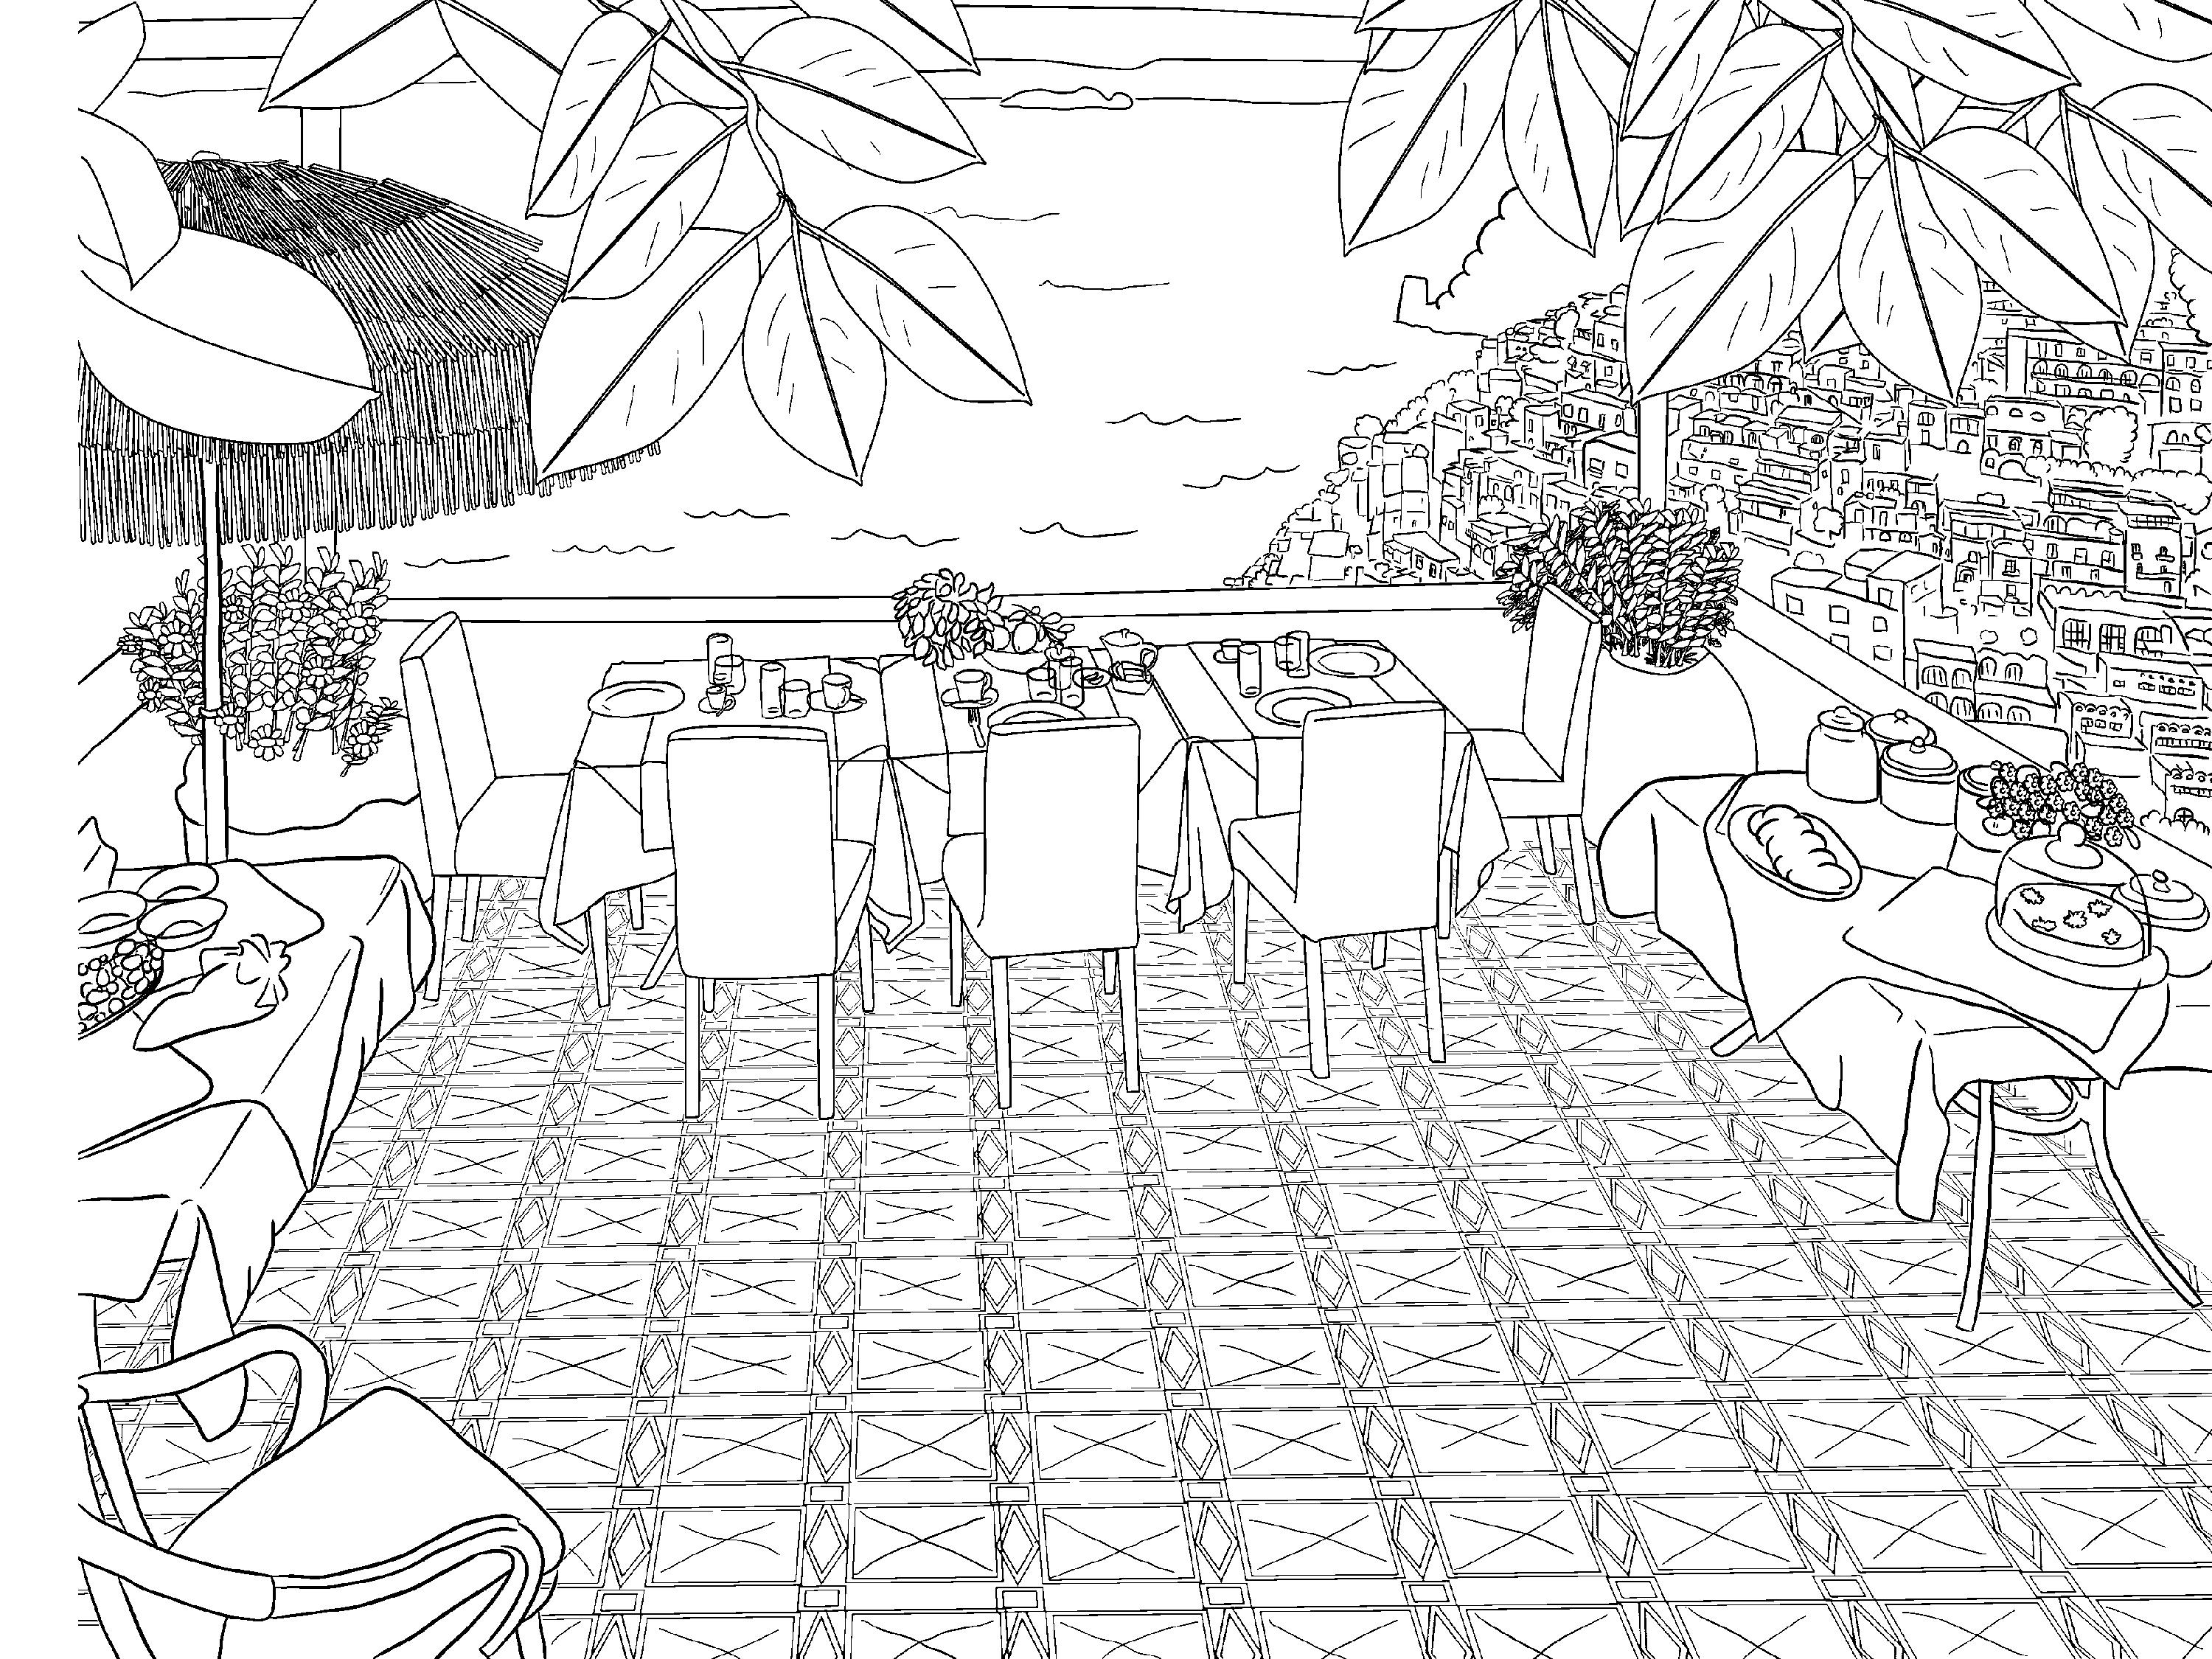 coloring scenery for kids beautiful scenery colouring pages in the playroom scenery for coloring kids